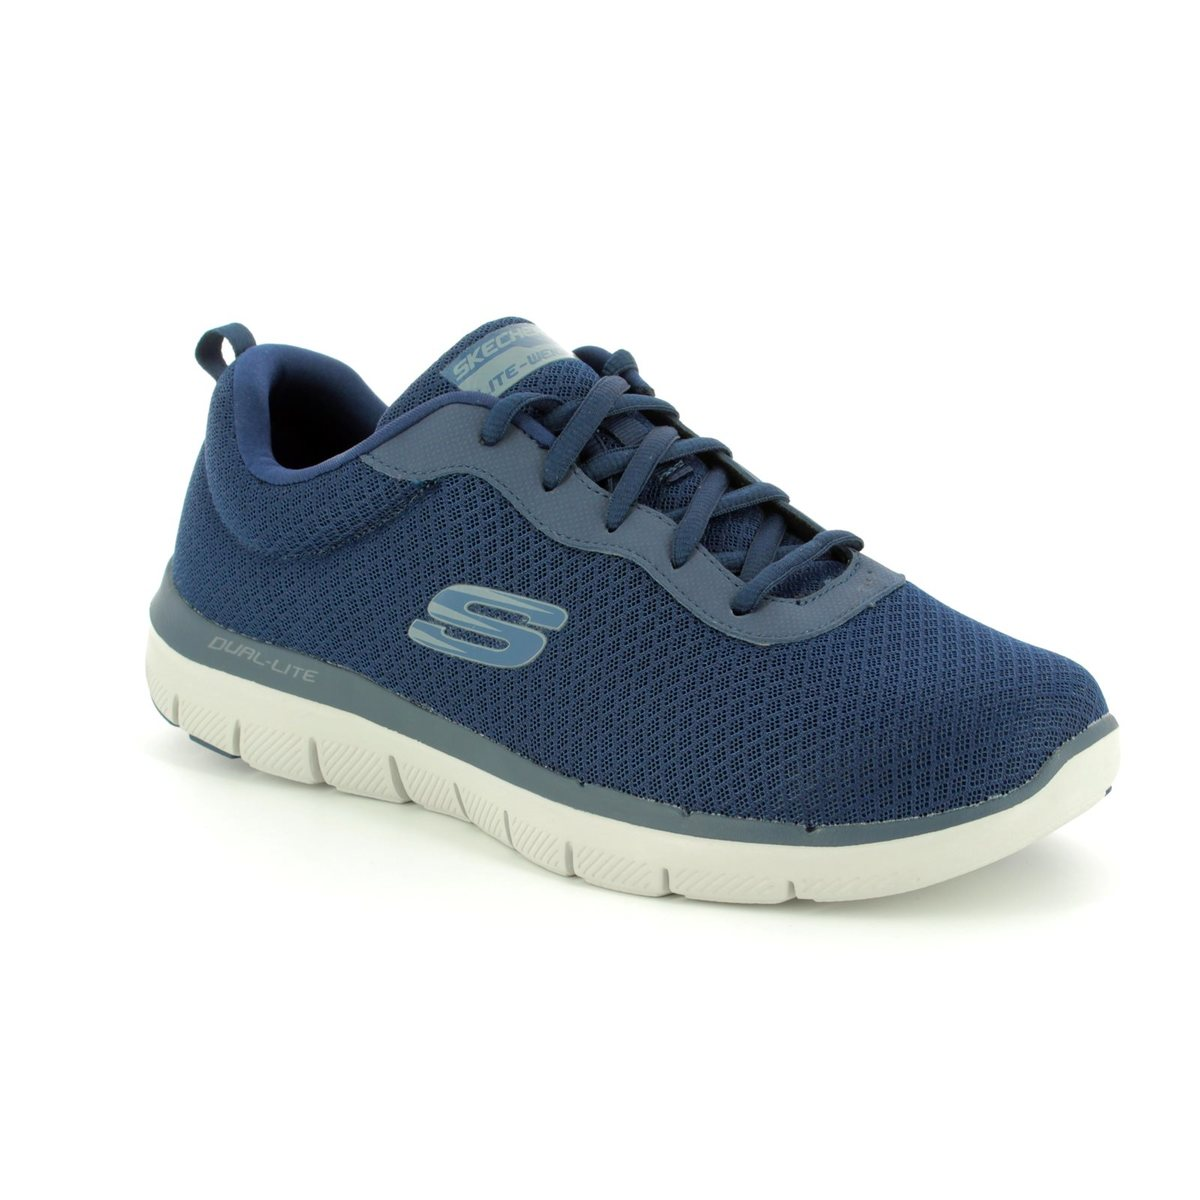 6c09c2968d9e Skechers Dayshow 52125 NVY Navy trainers